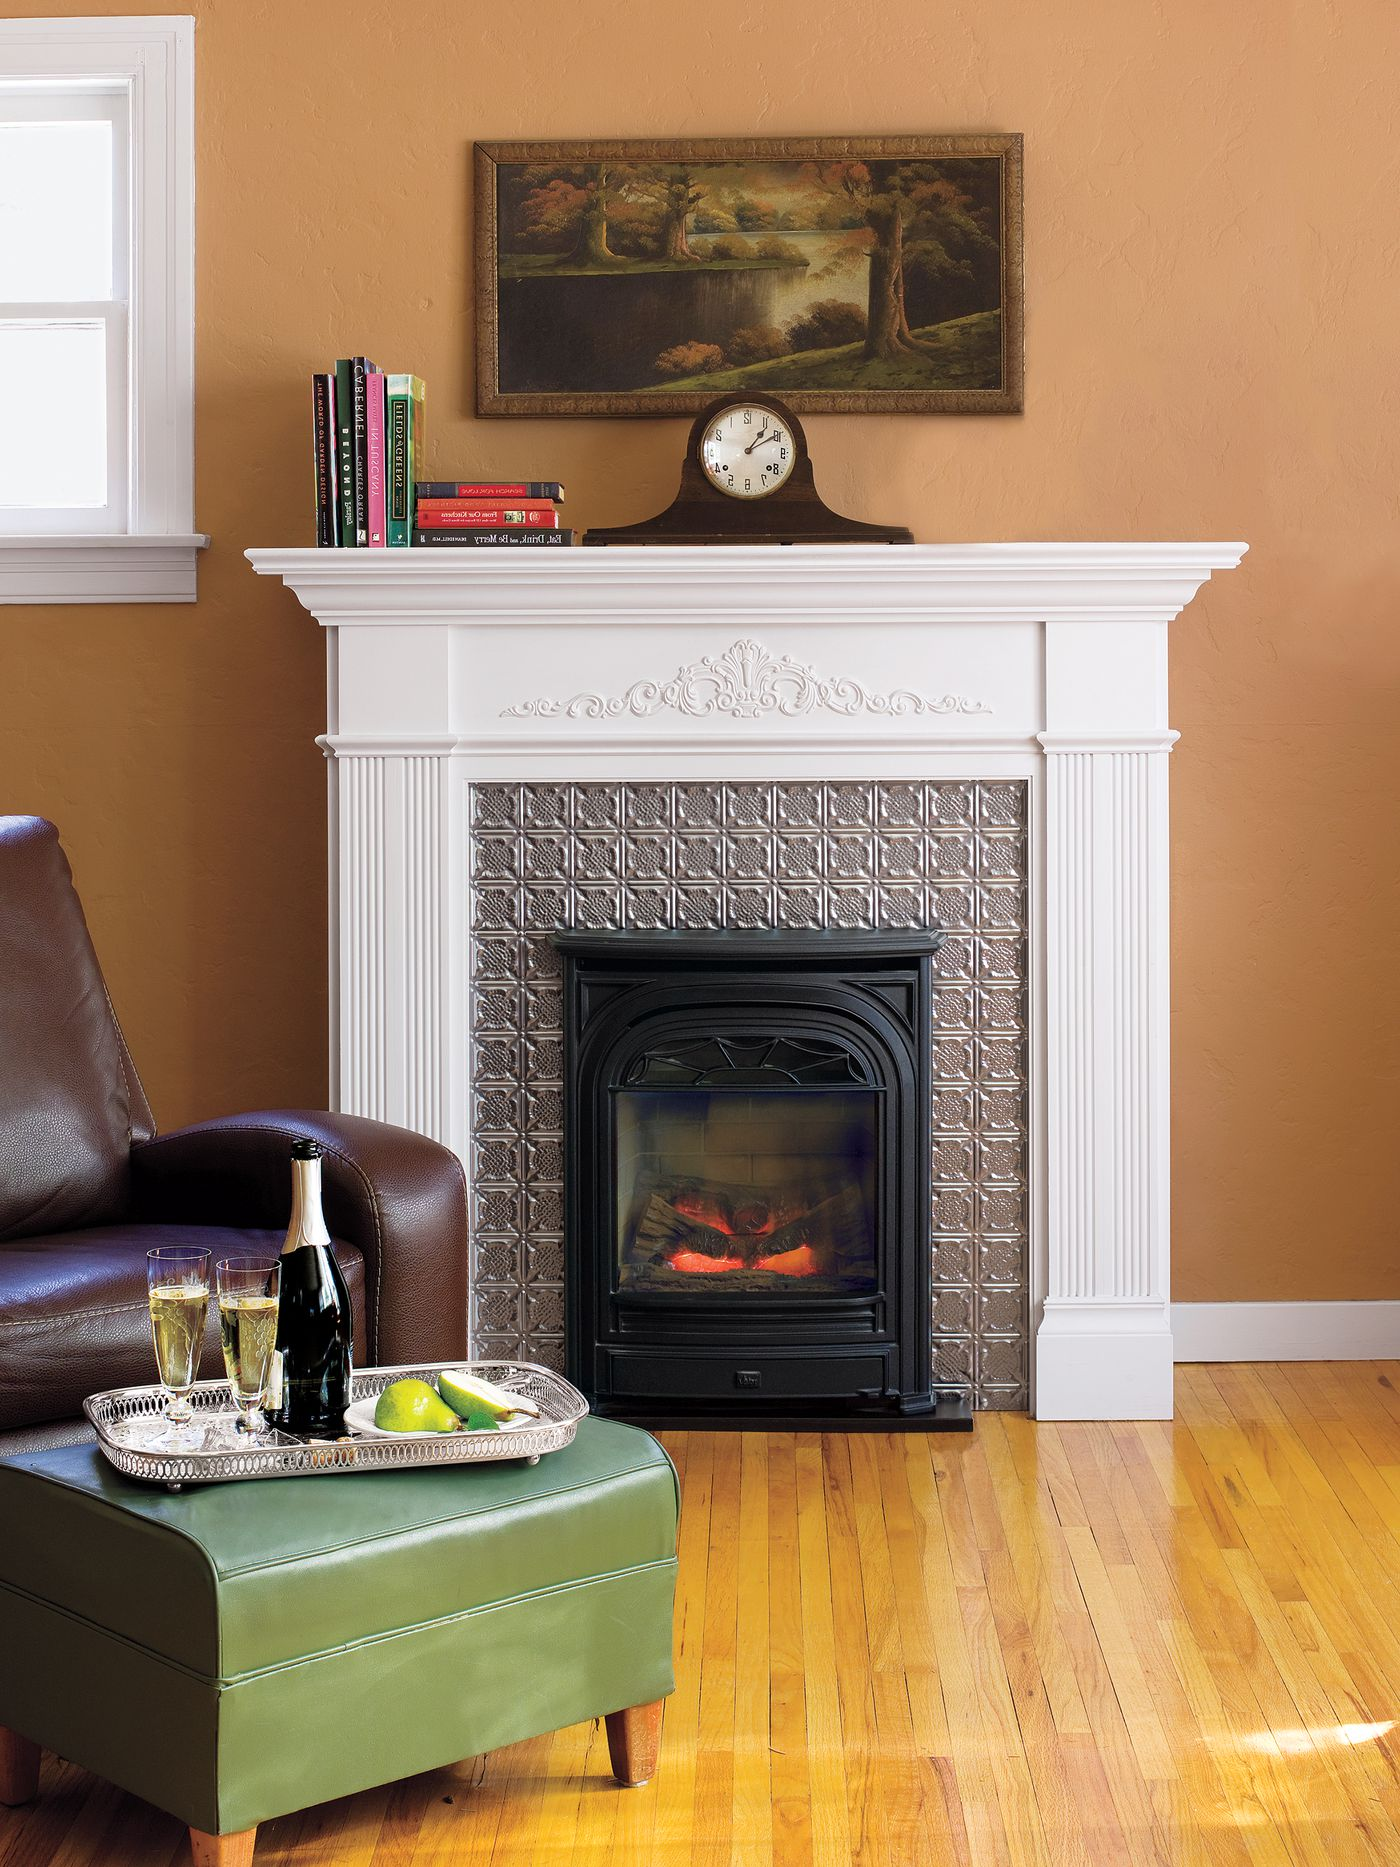 17 Fireplace Remodel Ideas Mantels Inserts Tiles More This Old House